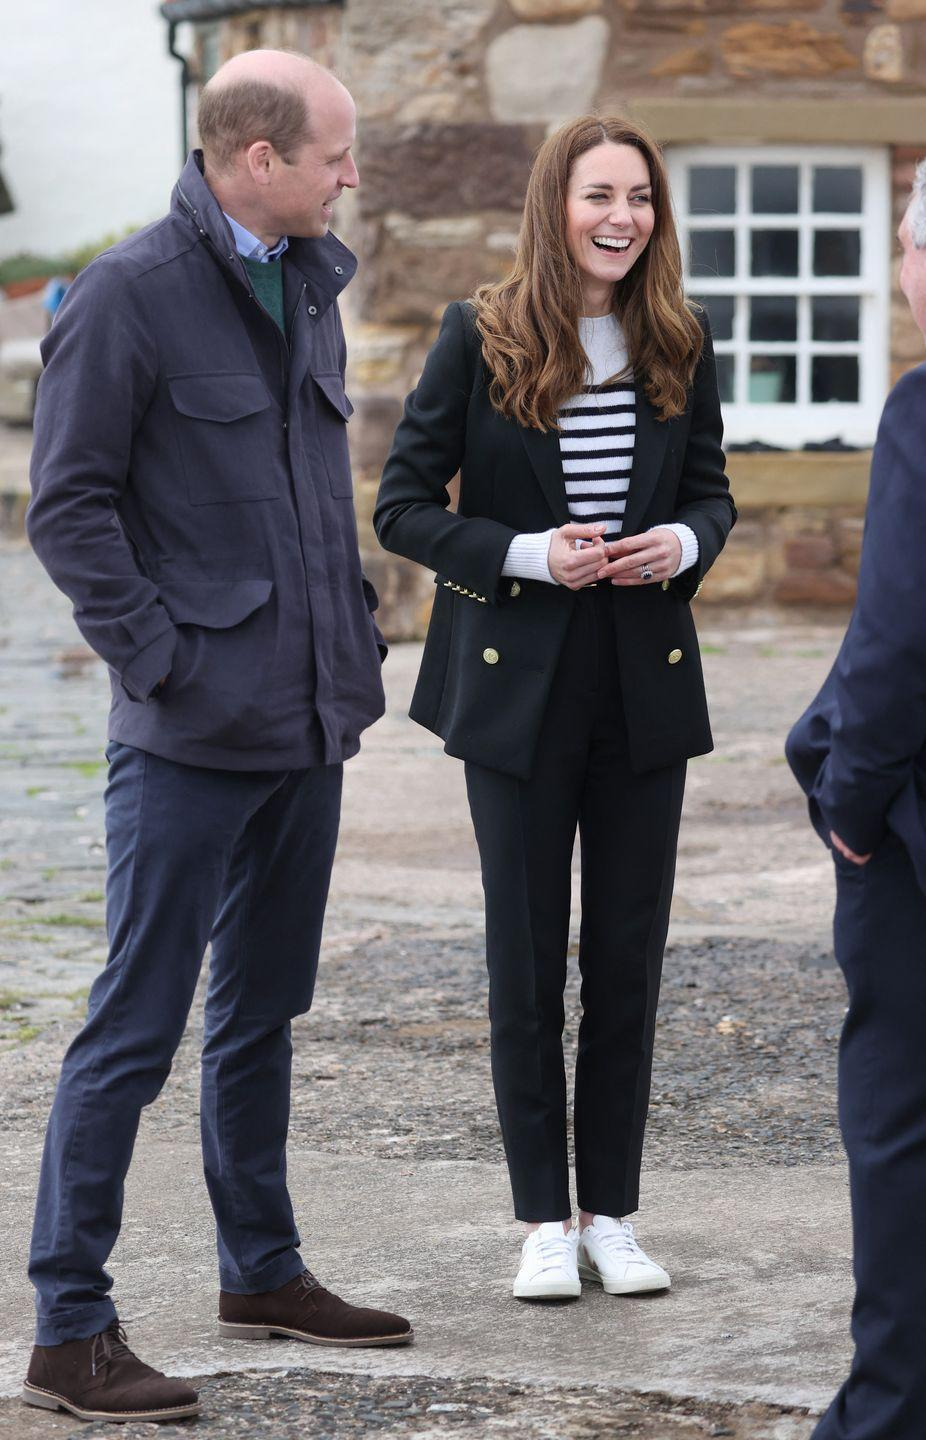 """<p>Meeting with fishermen in St Andrews, Scotland, the Duchess of Cambridge chose an appropriate nautical-inspired sweater, paired with a black blazer and slacks. She finished off the polished look with <a href=""""https://www.townandcountrymag.com/style/fashion-trends/g15925659/kate-middleton-favorite-shoes/"""" rel=""""nofollow noopener"""" target=""""_blank"""" data-ylk=""""slk:Veja sneakers"""" class=""""link rapid-noclick-resp"""">Veja sneakers</a>, a longtime Meghan Markle staple shoe.</p><p><a class=""""link rapid-noclick-resp"""" href=""""https://go.redirectingat.com?id=74968X1596630&url=https%3A%2F%2Fwww.net-a-porter.com%2Fen-us%2Fshop%2Fproduct%2Fveja%2Fshoes%2Flow-top%2Fplus-net-sustain-esplar-metallic-trimmed-leather-sneakers%2F22527730566102805&sref=https%3A%2F%2Fwww.townandcountrymag.com%2Fstyle%2Ffashion-trends%2Fnews%2Fg1633%2Fkate-middleton-fashion%2F"""" rel=""""nofollow noopener"""" target=""""_blank"""" data-ylk=""""slk:Shop the Sneakers"""">Shop the Sneakers</a></p>"""